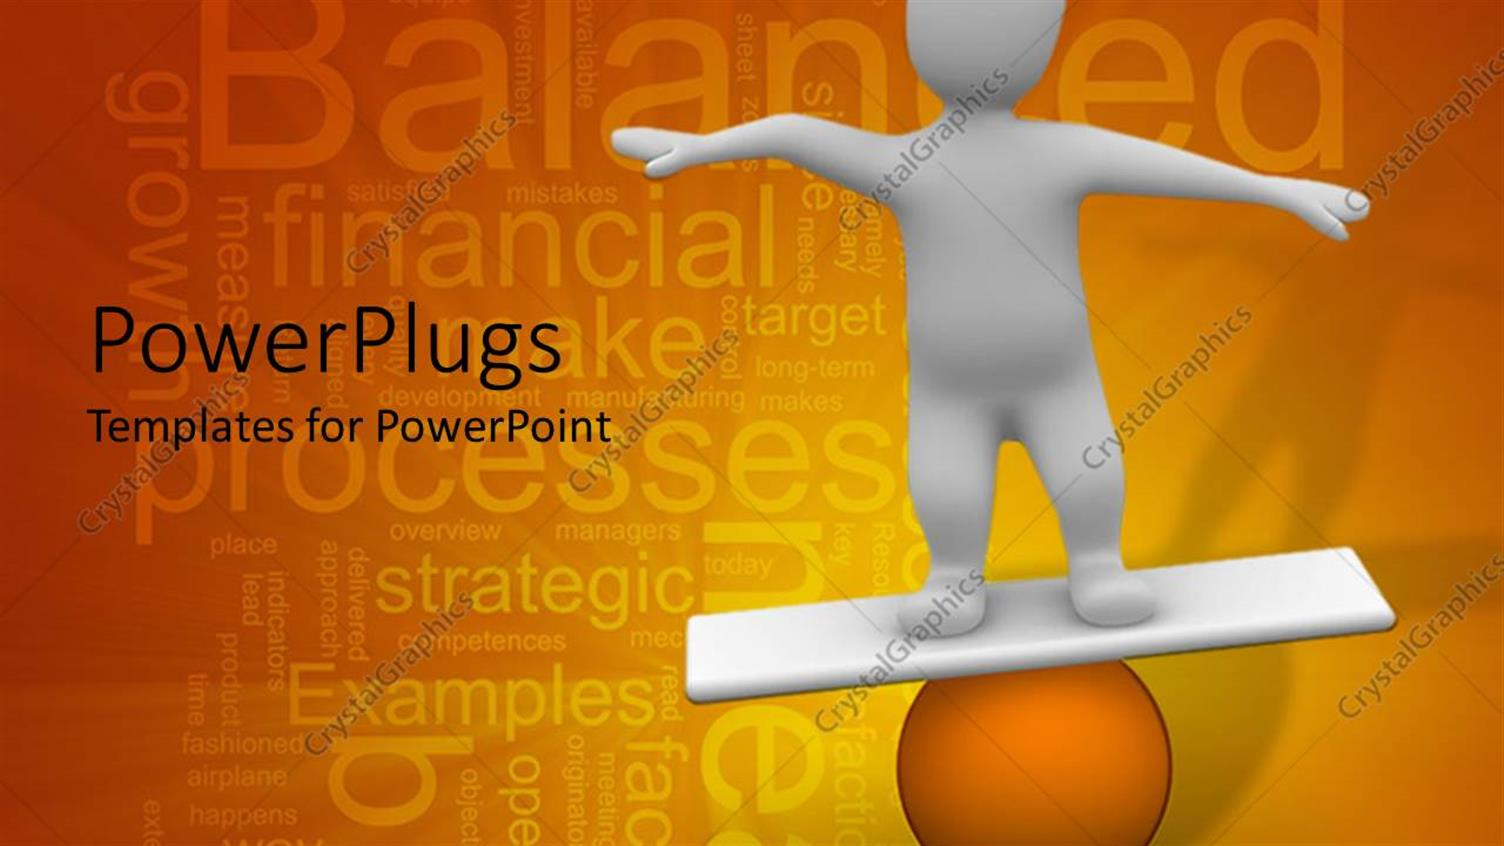 PowerPoint Template Displaying White Figure Balancing on Orange Ball, Business Word Cloud Background